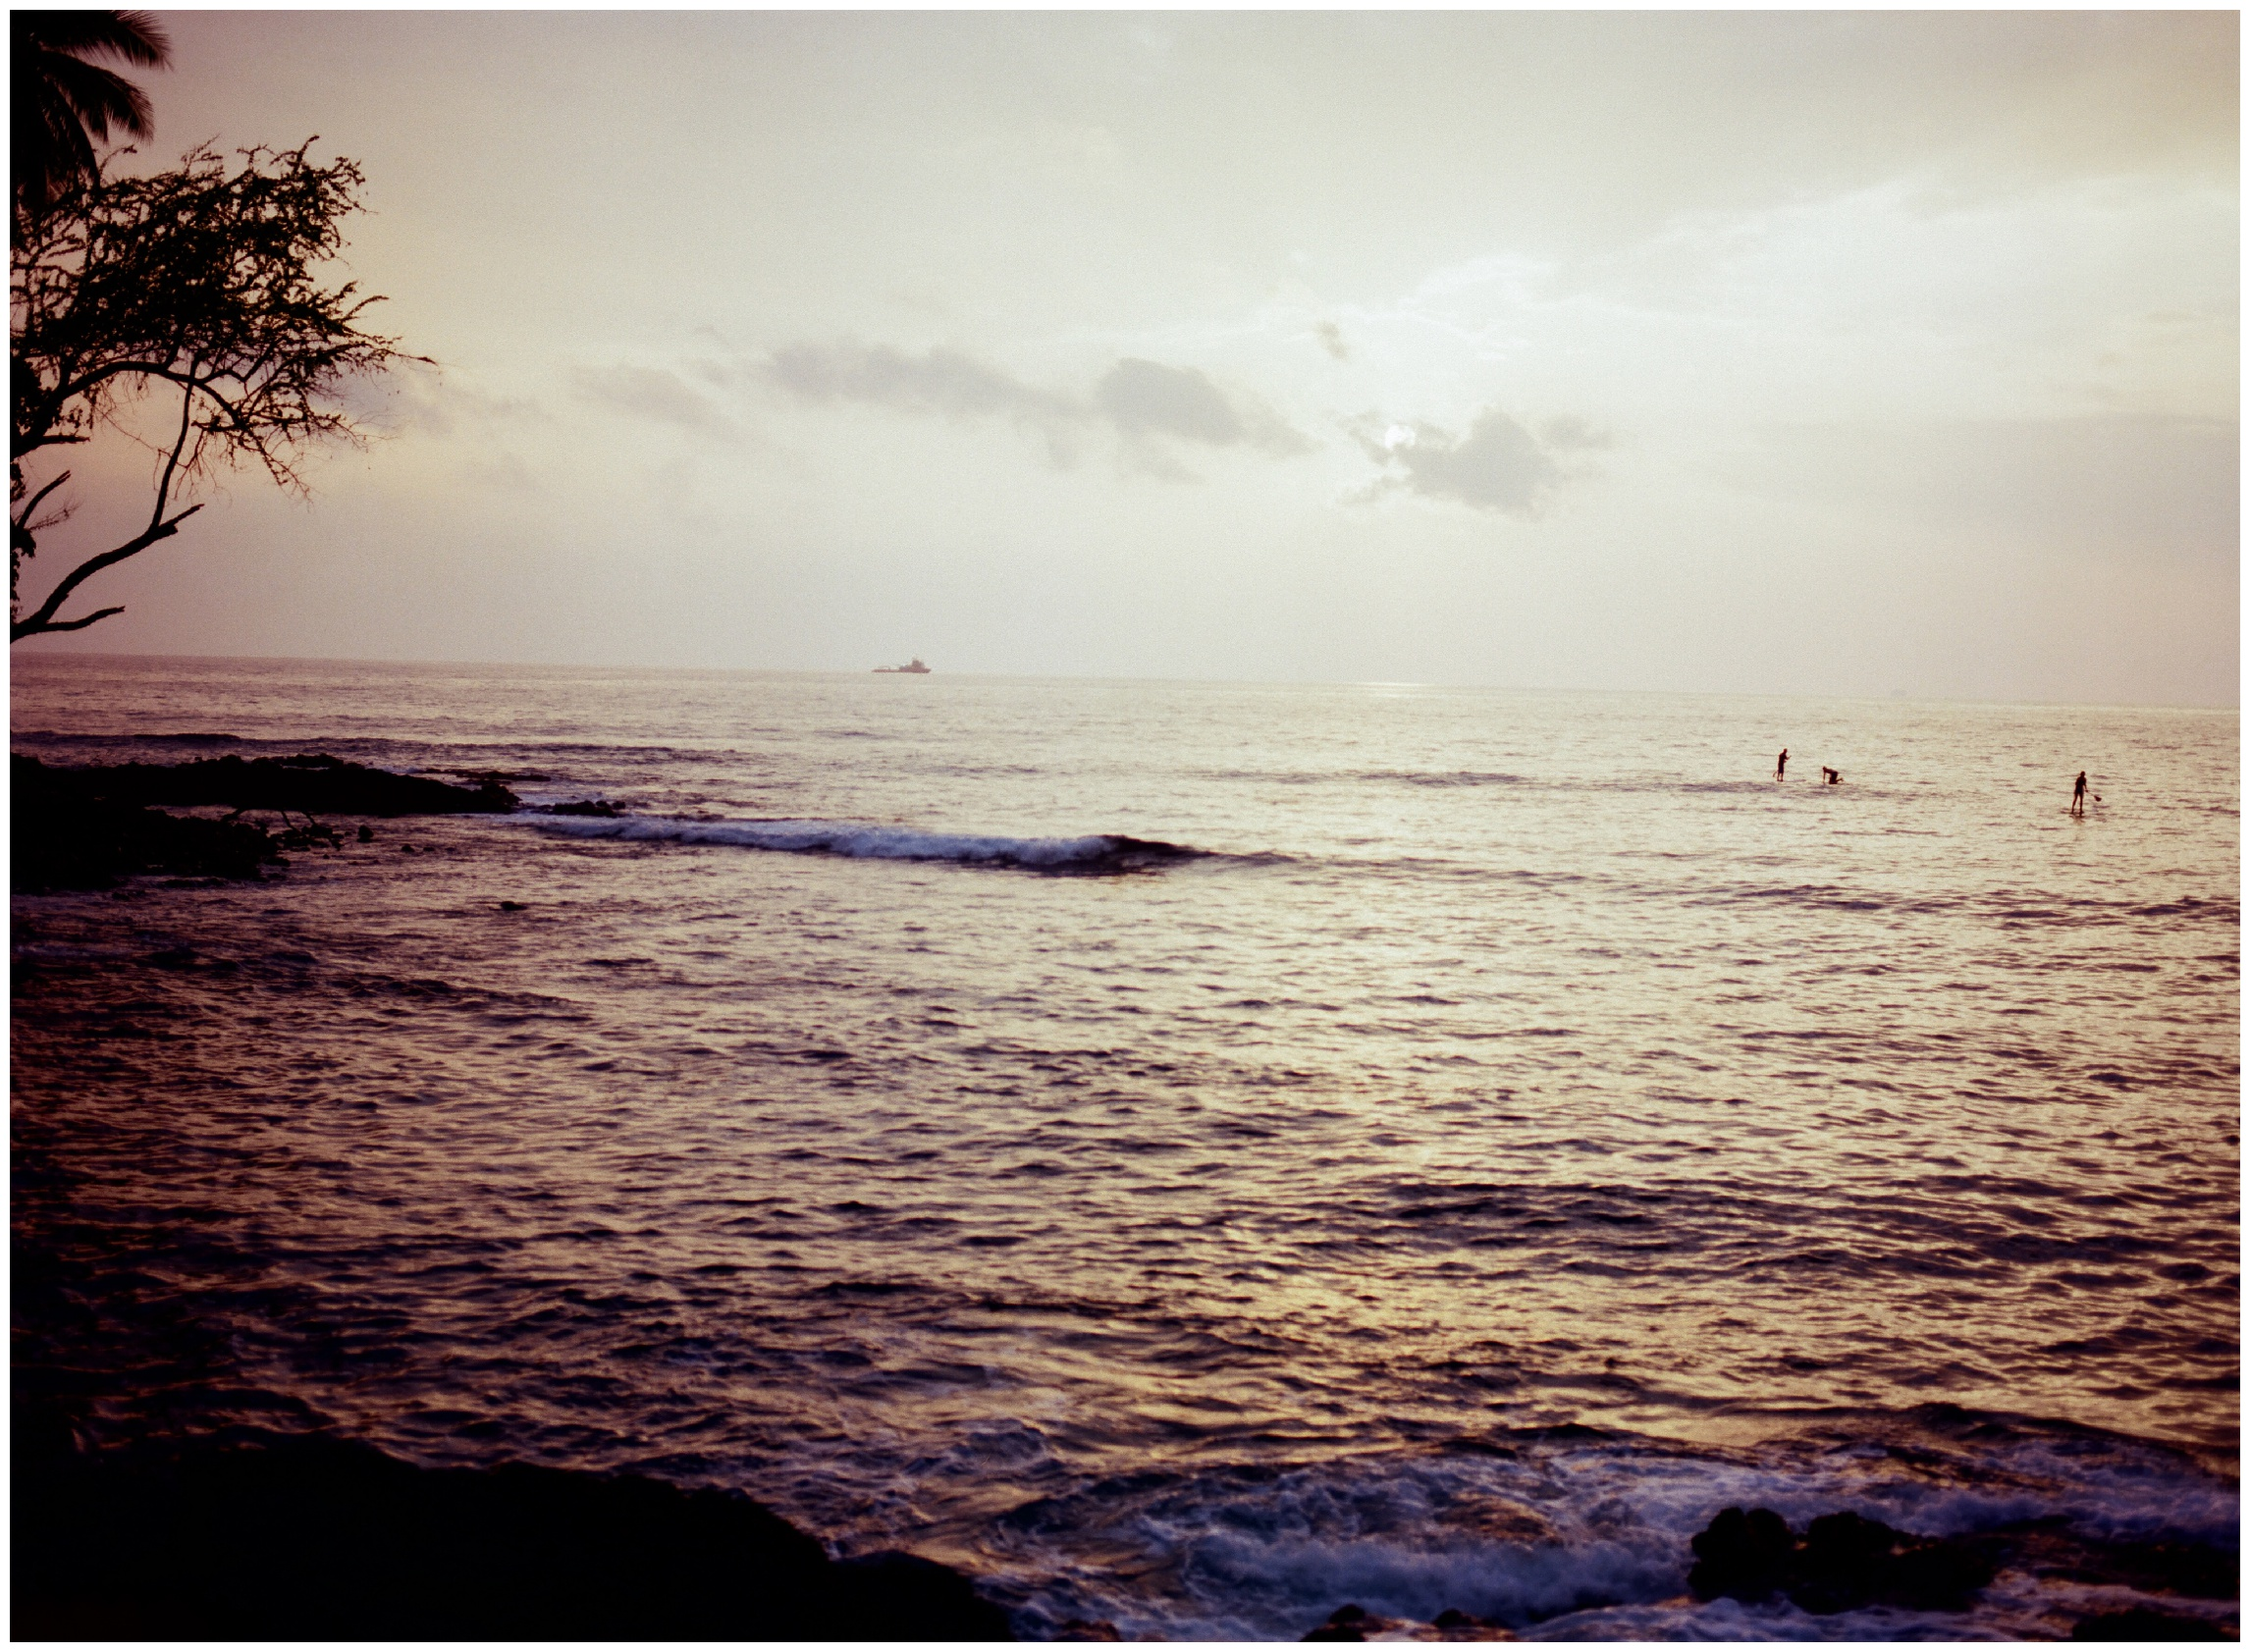 The surf at sunset at Kamoa Point, Hawaii. Film photography by Sonja Salzburg of Sonja K Photography.